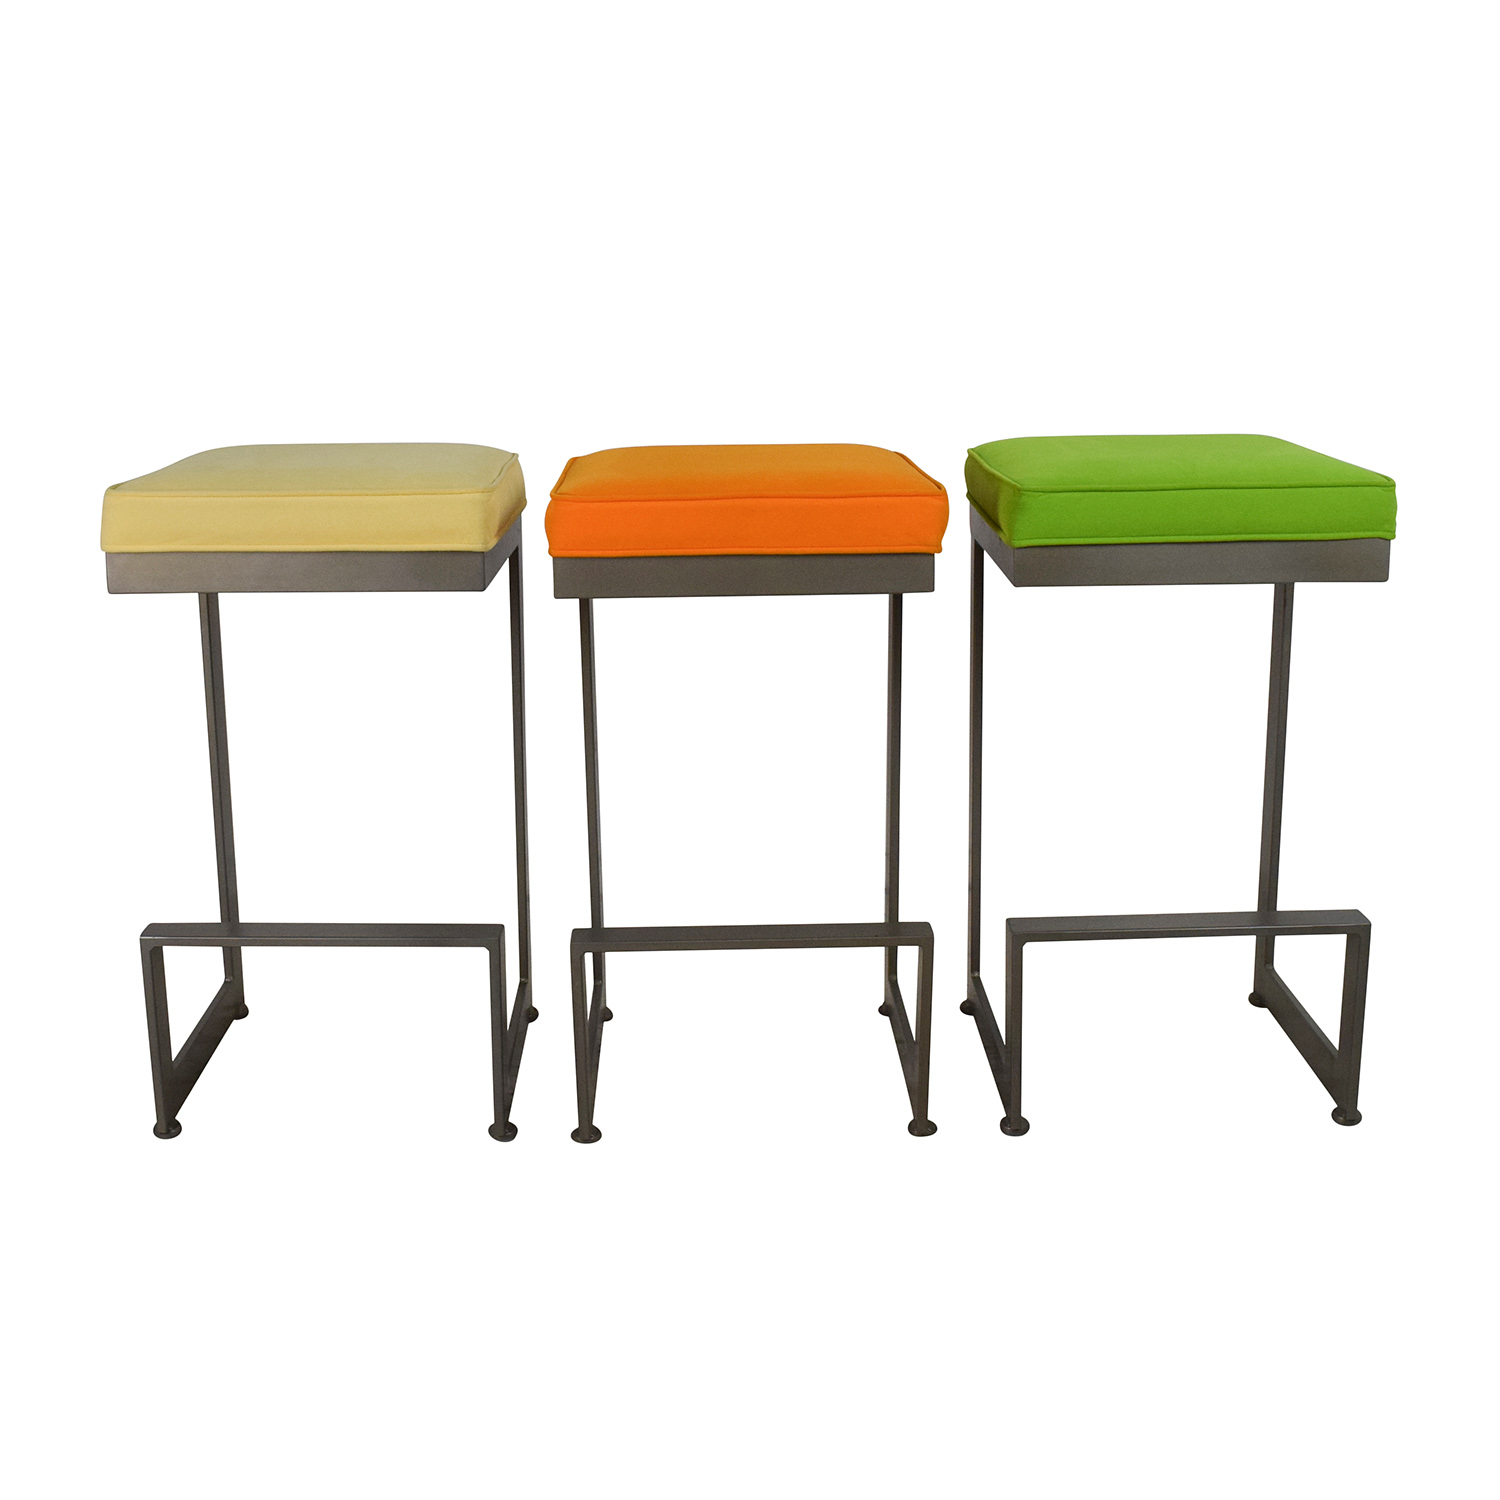 off  white quilted bar stool chairs  chairs - modern bar stools  stools